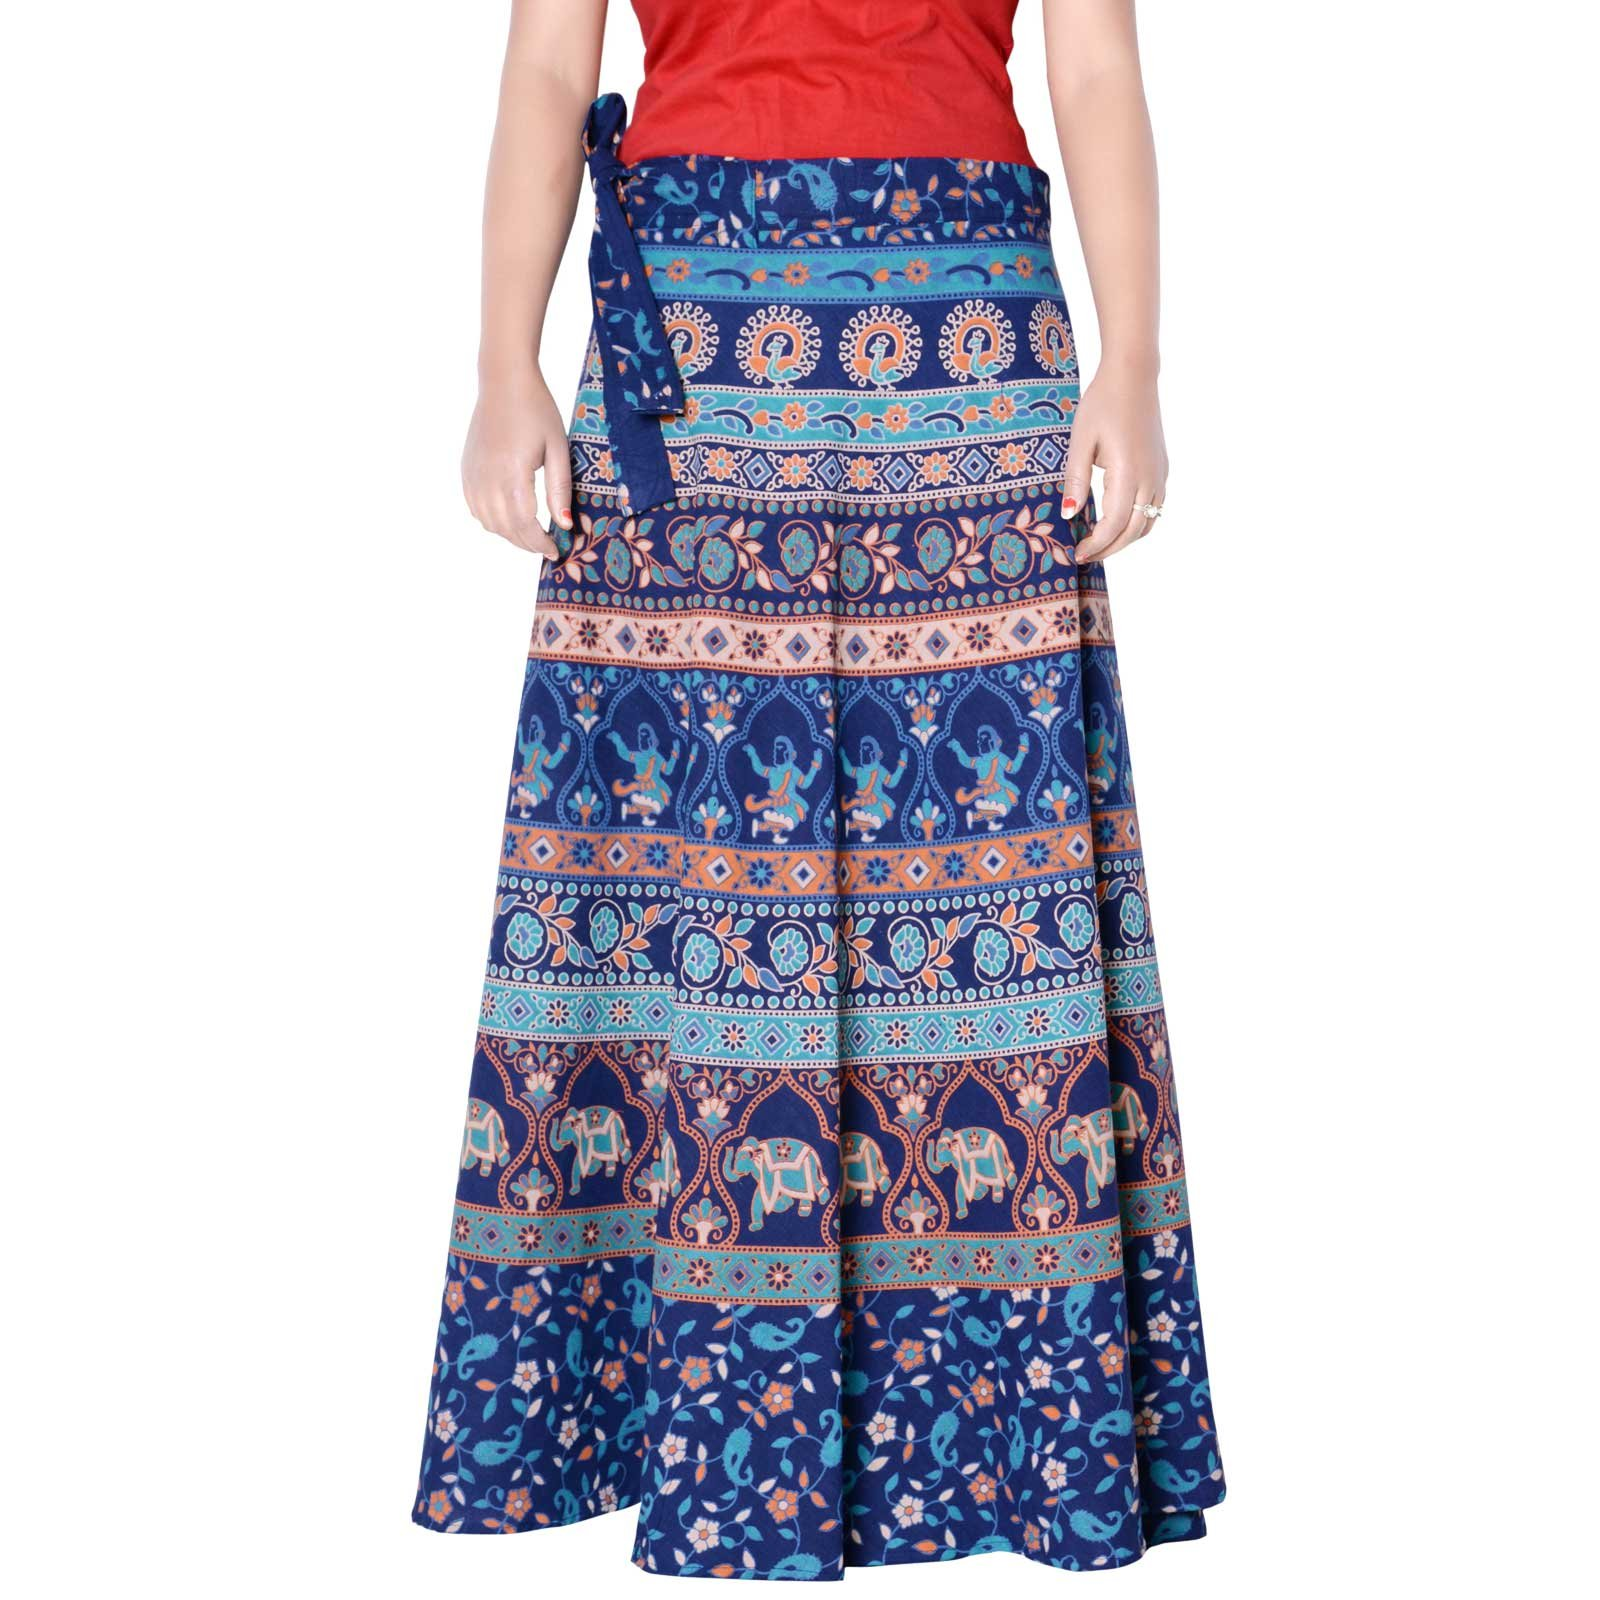 Sttoffa High Waist Skirt Ethnic Style Cotton Wrap Around Skirt Turquoise Color Free Size Skirt 36 Length Skirt D3